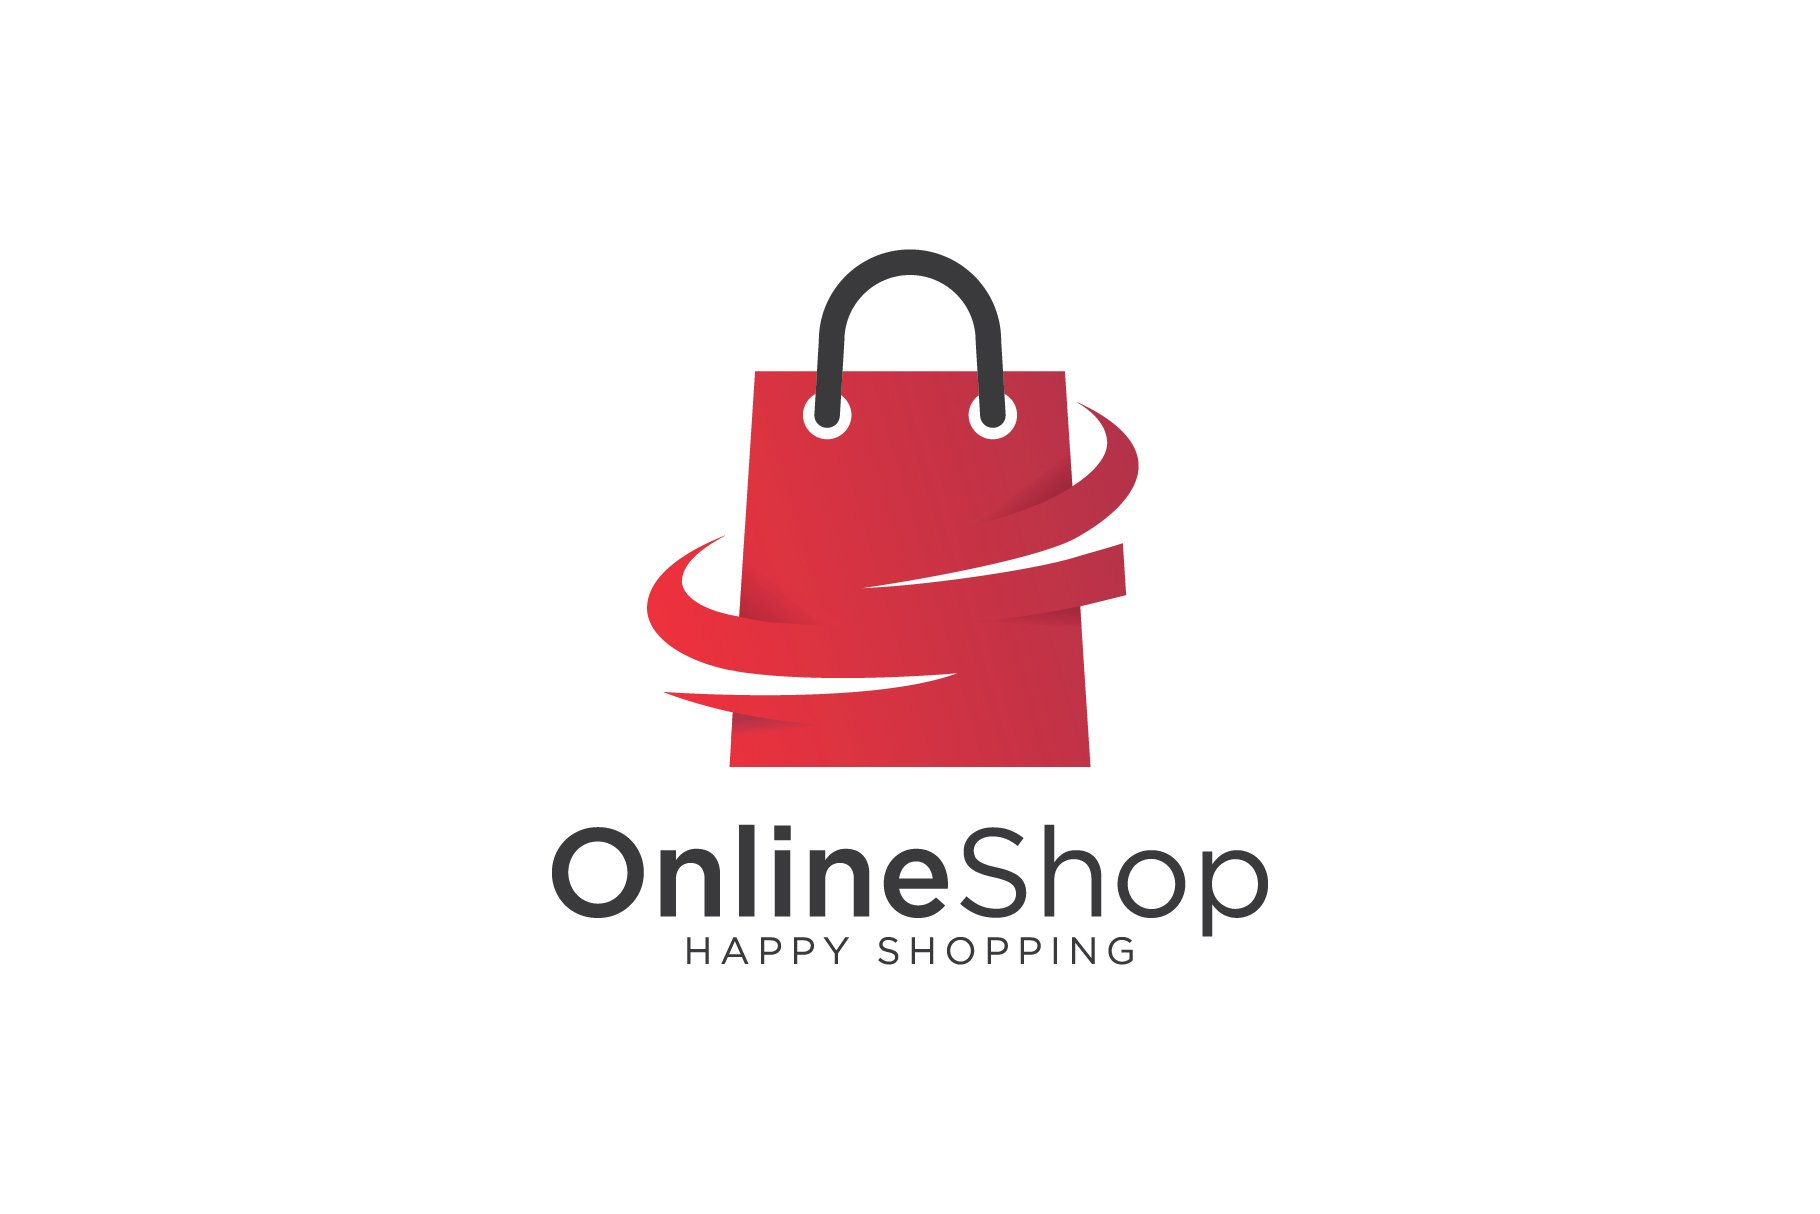 Online shop logo logo templates creative market for Design online shop